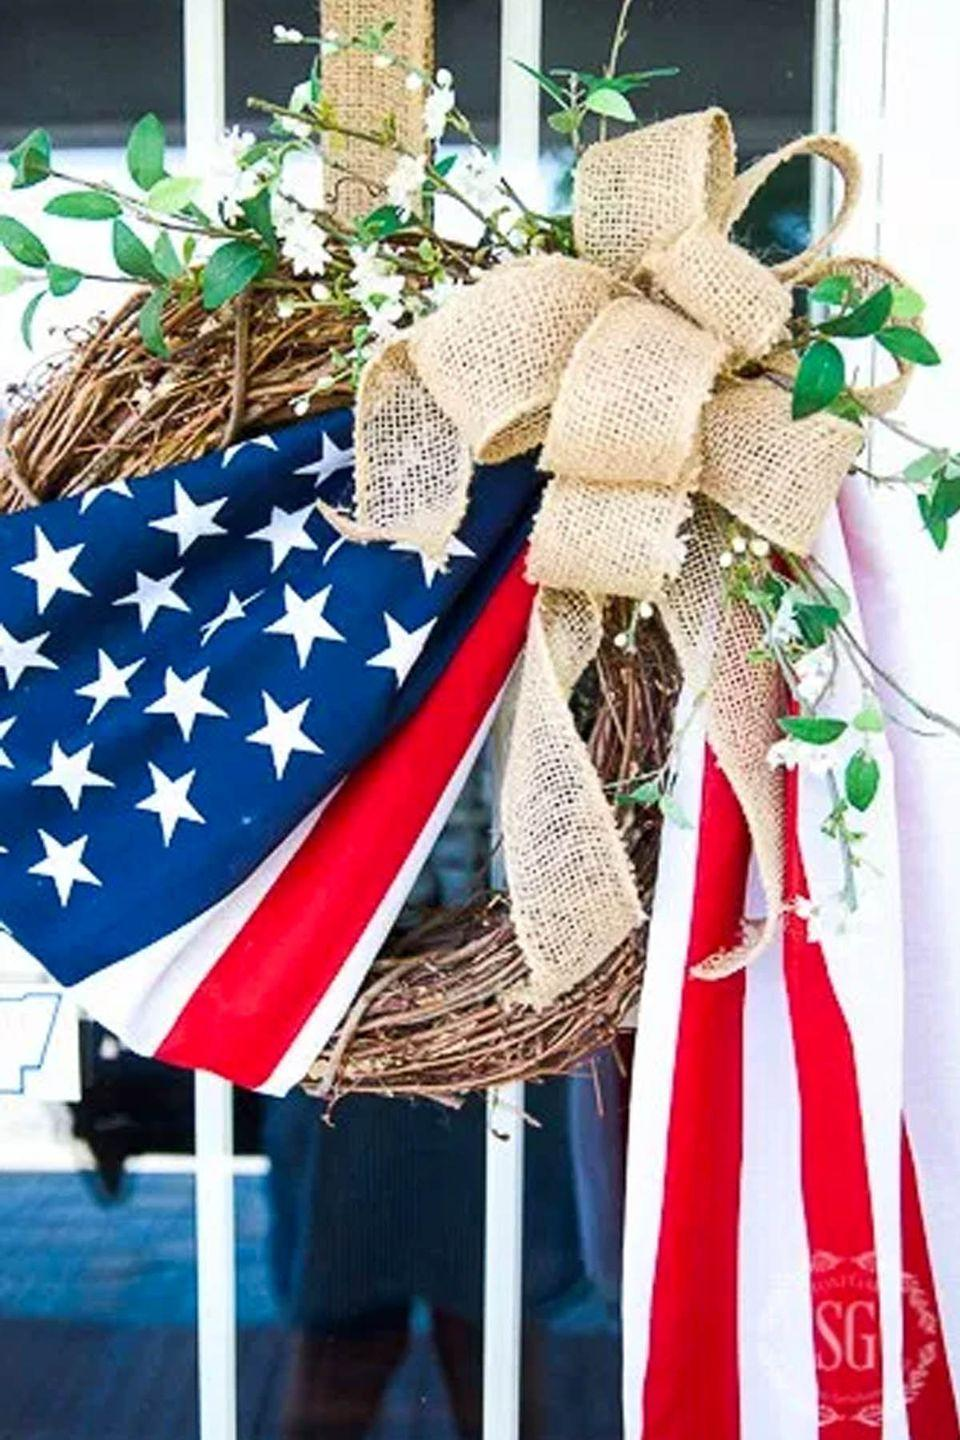 """<p>Display a flag in a creative way by draping it across a grapevine wreath for the ultimate patriotic door decor.<br></p><p><strong>Get the tutorial at <a href=""""http://www.stonegableblog.com/old-glory-wreath-diy/"""" rel=""""nofollow noopener"""" target=""""_blank"""" data-ylk=""""slk:Stone Gable"""" class=""""link rapid-noclick-resp"""">Stone Gable</a>. </strong></p><p><strong><a class=""""link rapid-noclick-resp"""" href=""""https://www.amazon.com/Anley-Fly-Breeze-American-Polyester/dp/B015R4DH2G/ref=sr_1_5?tag=syn-yahoo-20&ascsubtag=%5Bartid%7C10050.g.4464%5Bsrc%7Cyahoo-us"""" rel=""""nofollow noopener"""" target=""""_blank"""" data-ylk=""""slk:SHOP AMERICAN FLAGS"""">SHOP AMERICAN FLAGS</a><br></strong></p>"""